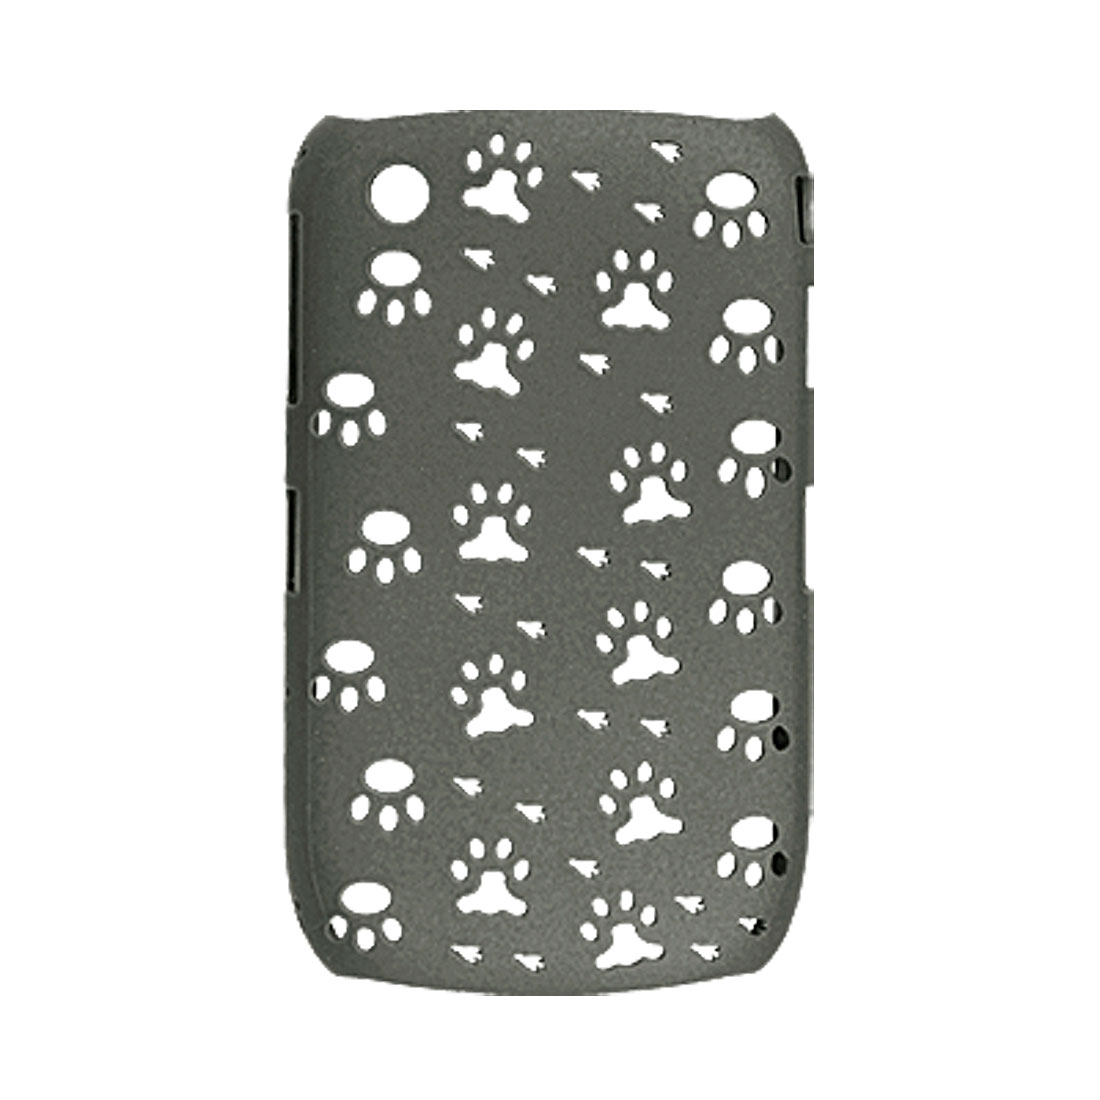 Paw Hole Design Gray Hard Plastic Back Case for Blackberry 8520